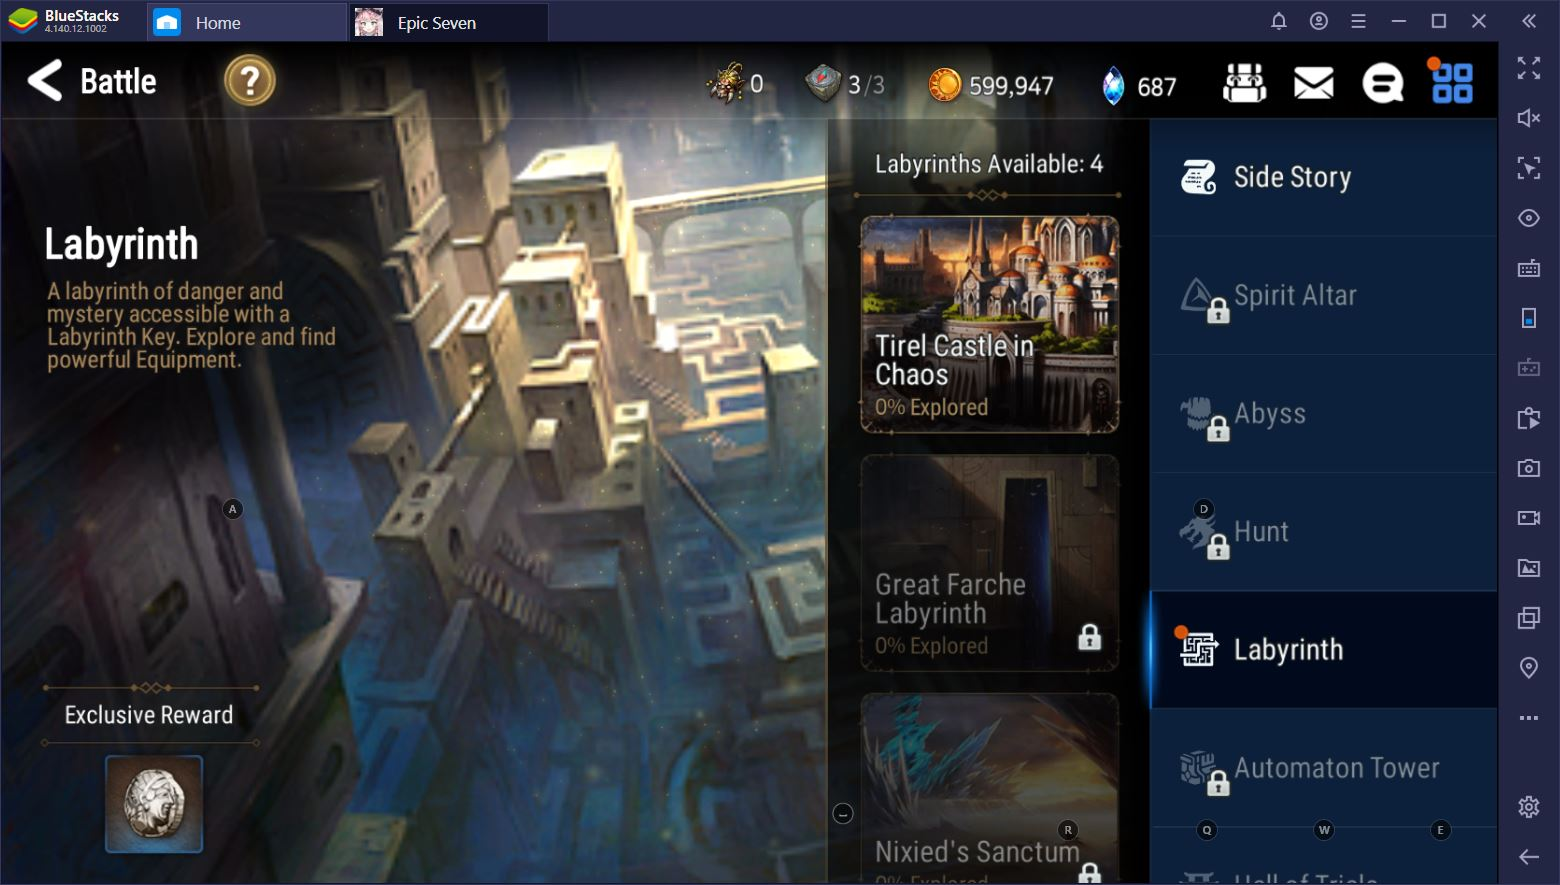 Epic Seven: 10 Essential Tips for Beginners on PC